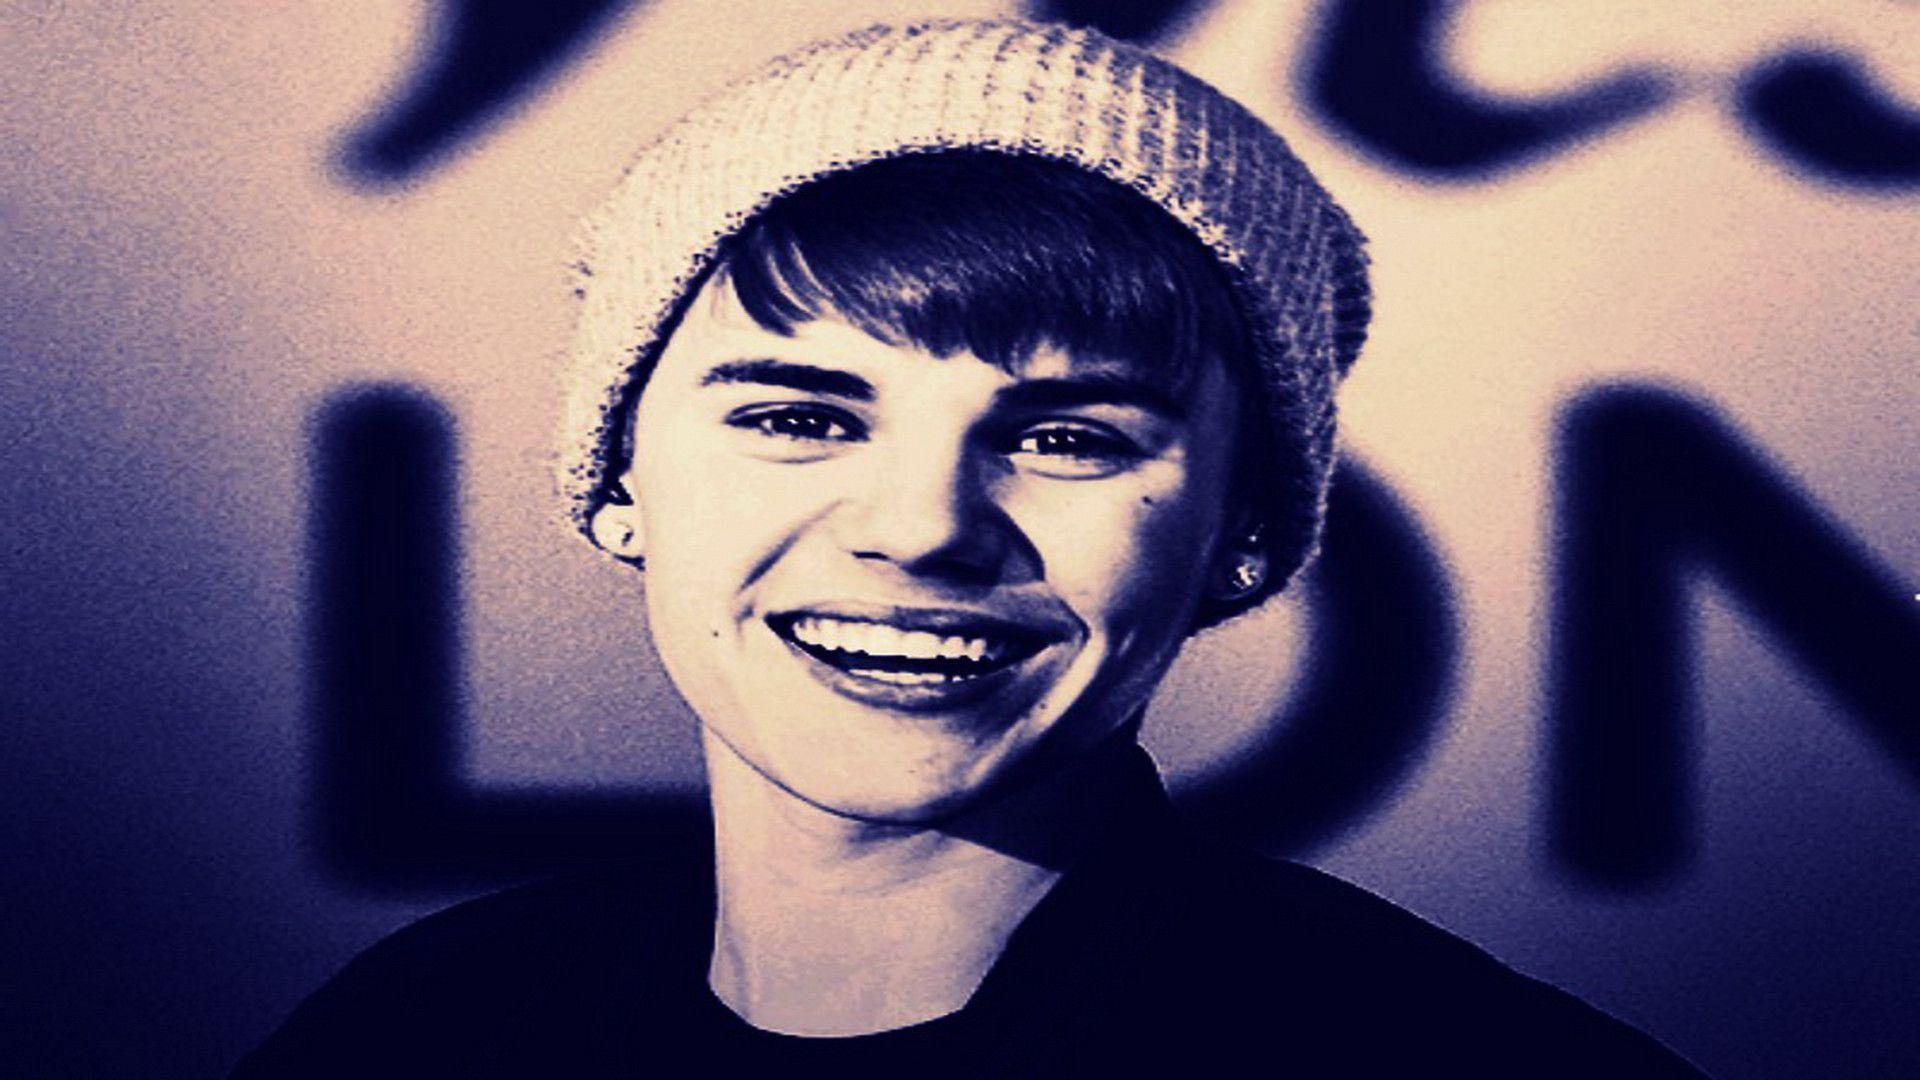 Justin Bieber Wallpapers, -justin-bieber-28043564-800-600, HD ...